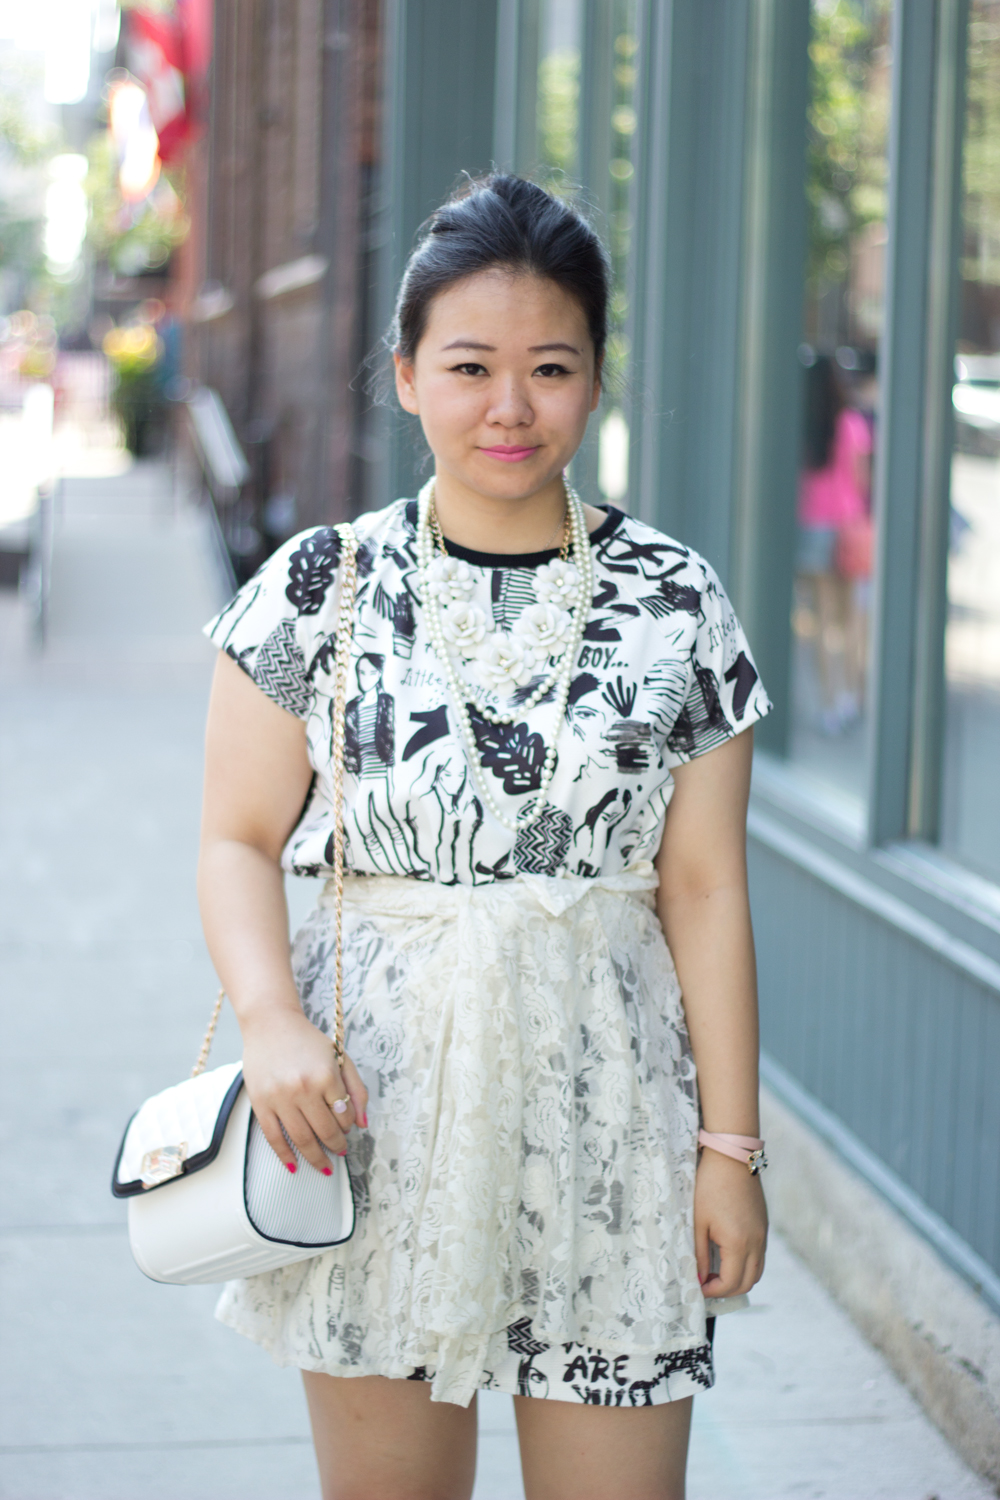 black-and-white-graphic-dress, statement-necklaces, lace-cardigan-as-a-shkirt